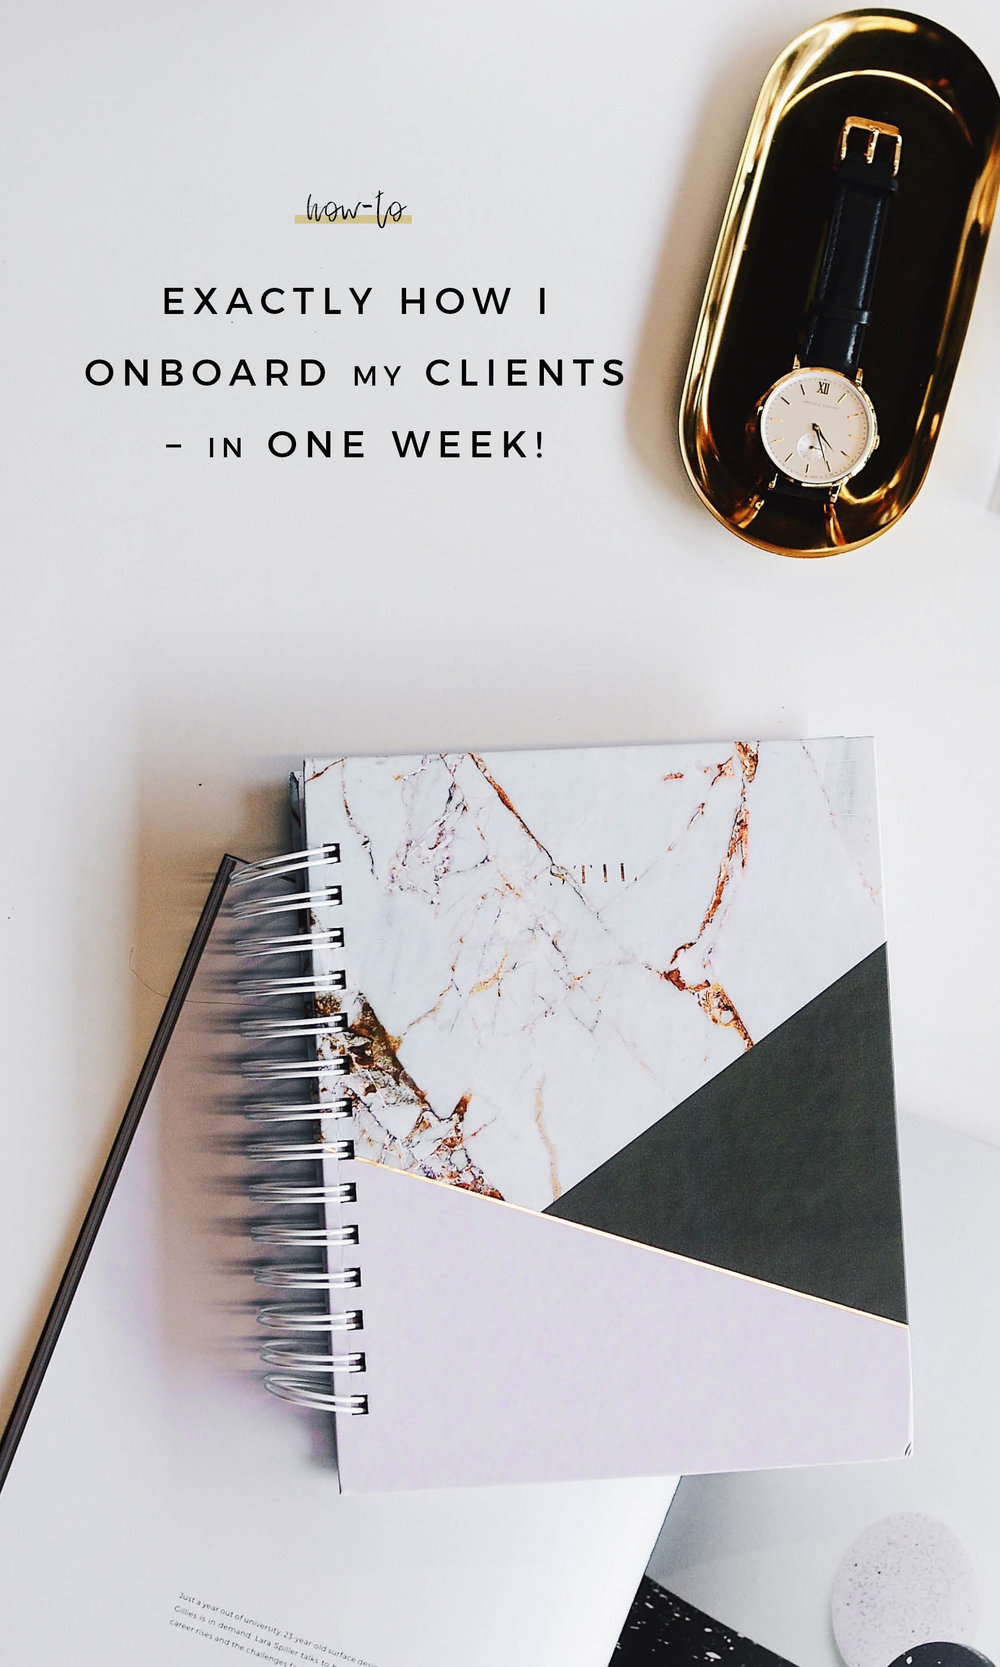 Lindsay Scholz | St. Louis branding, social media and graphic design for small businesses, brands and bloggers